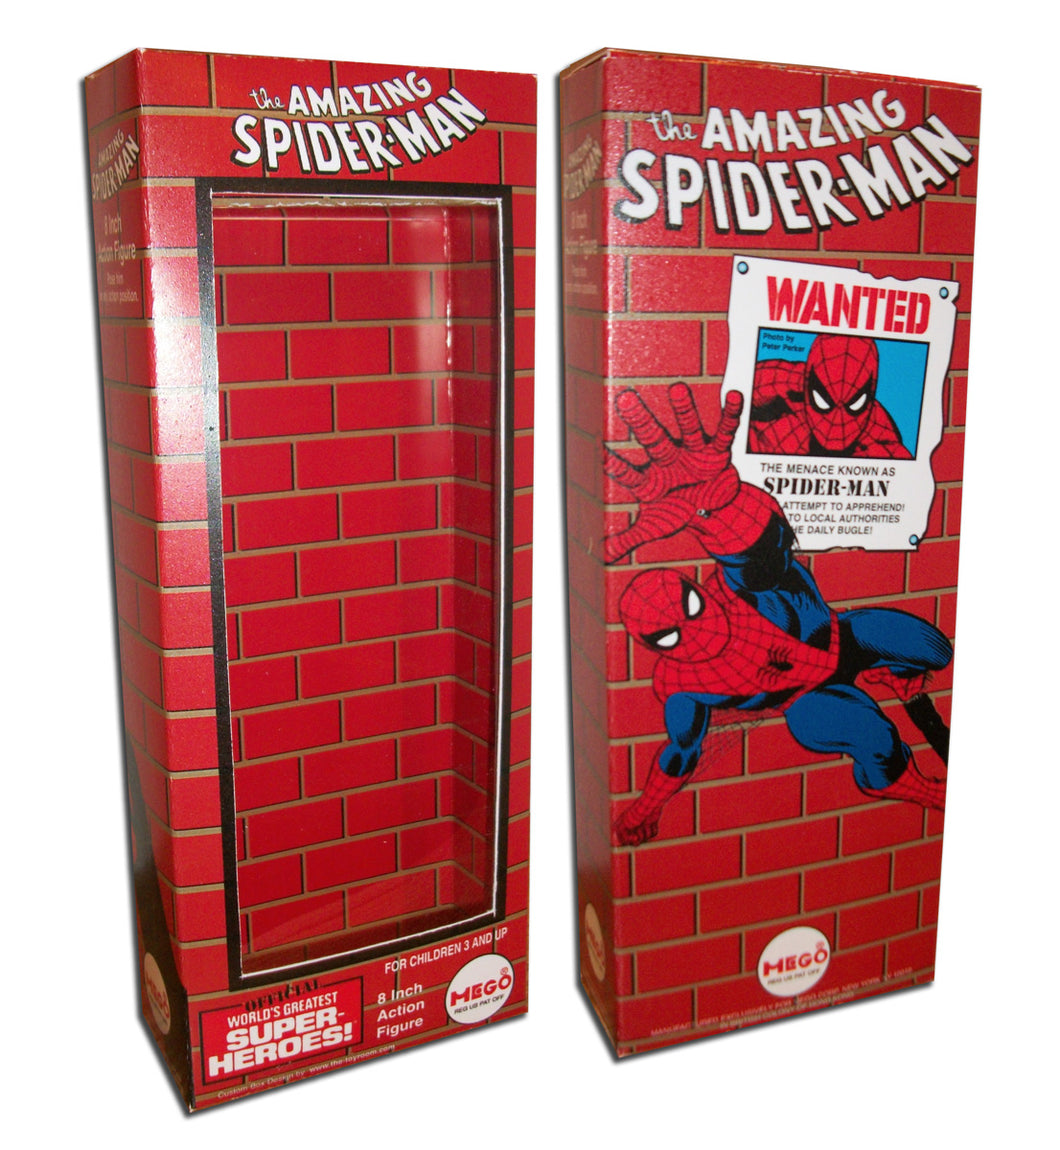 Mego Spider-Man Box: Wanted (Brick)